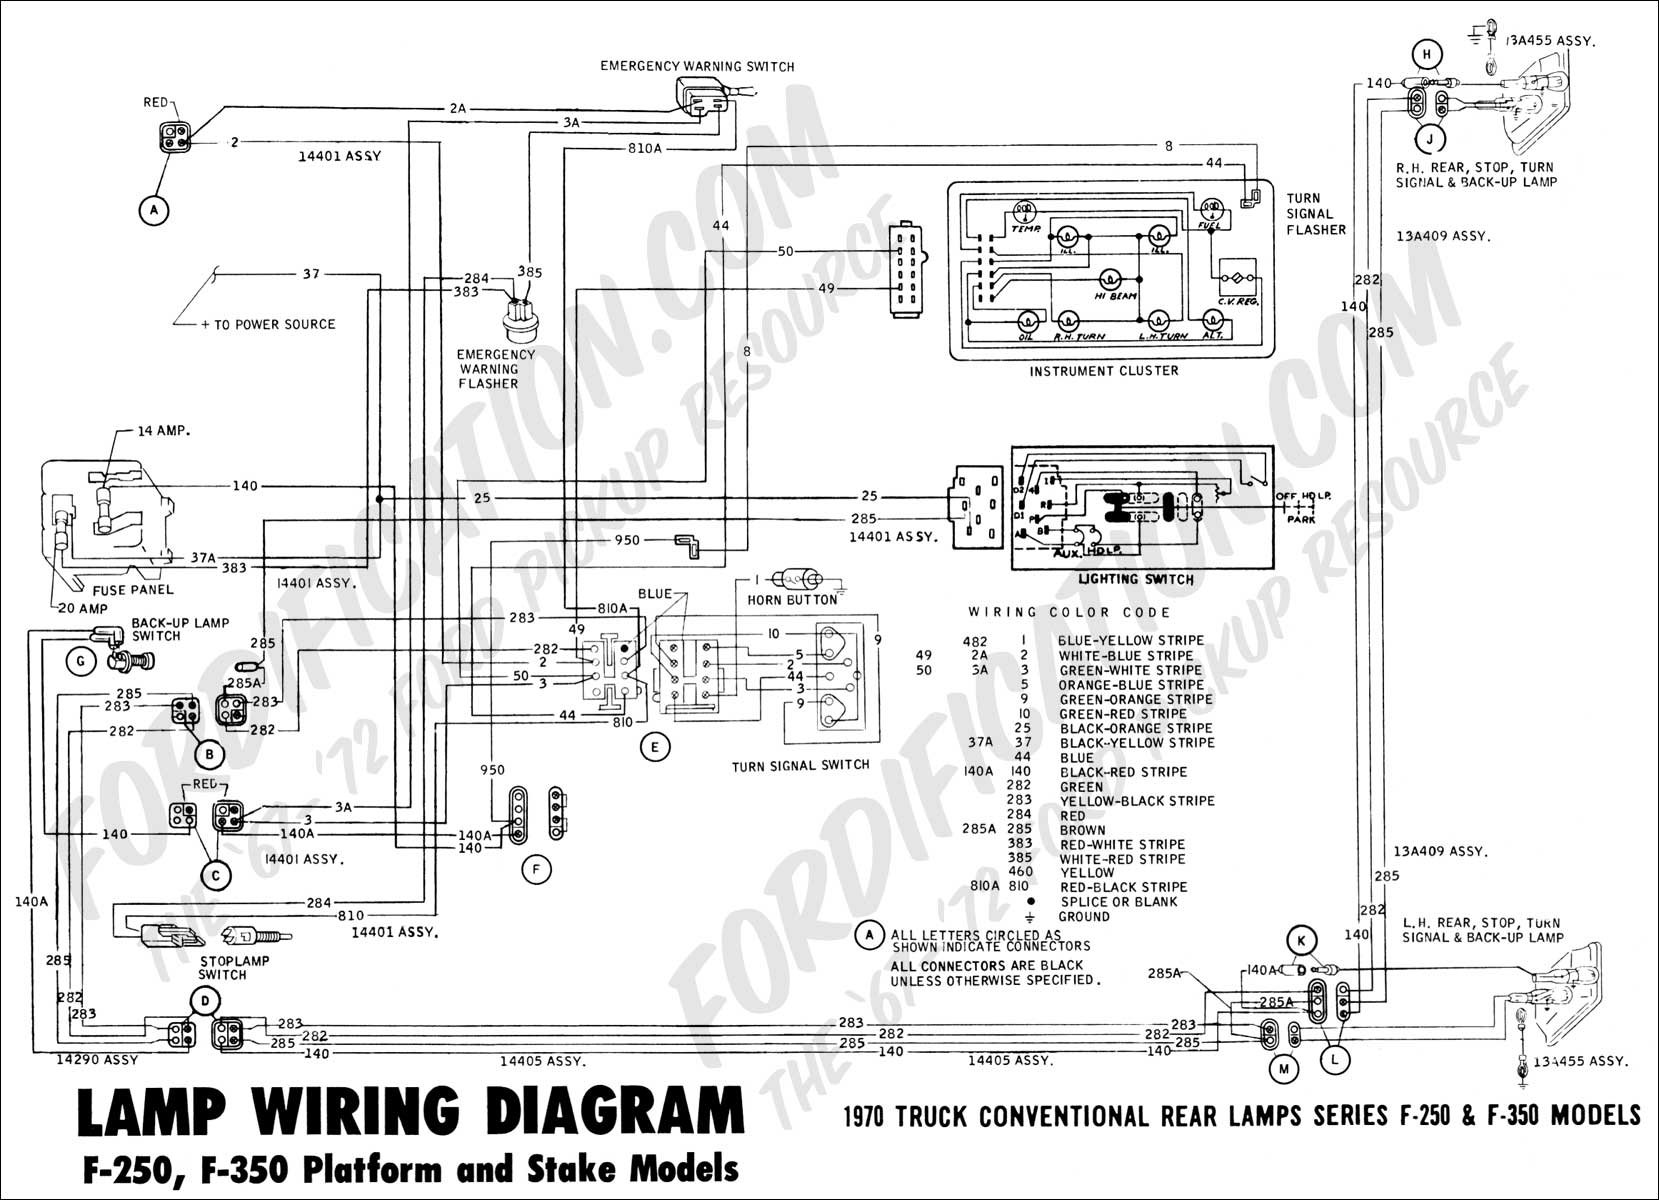 ford truck technical drawings and schematics - section h - wiring diagrams 2001 f 350 tail light wiring diagram